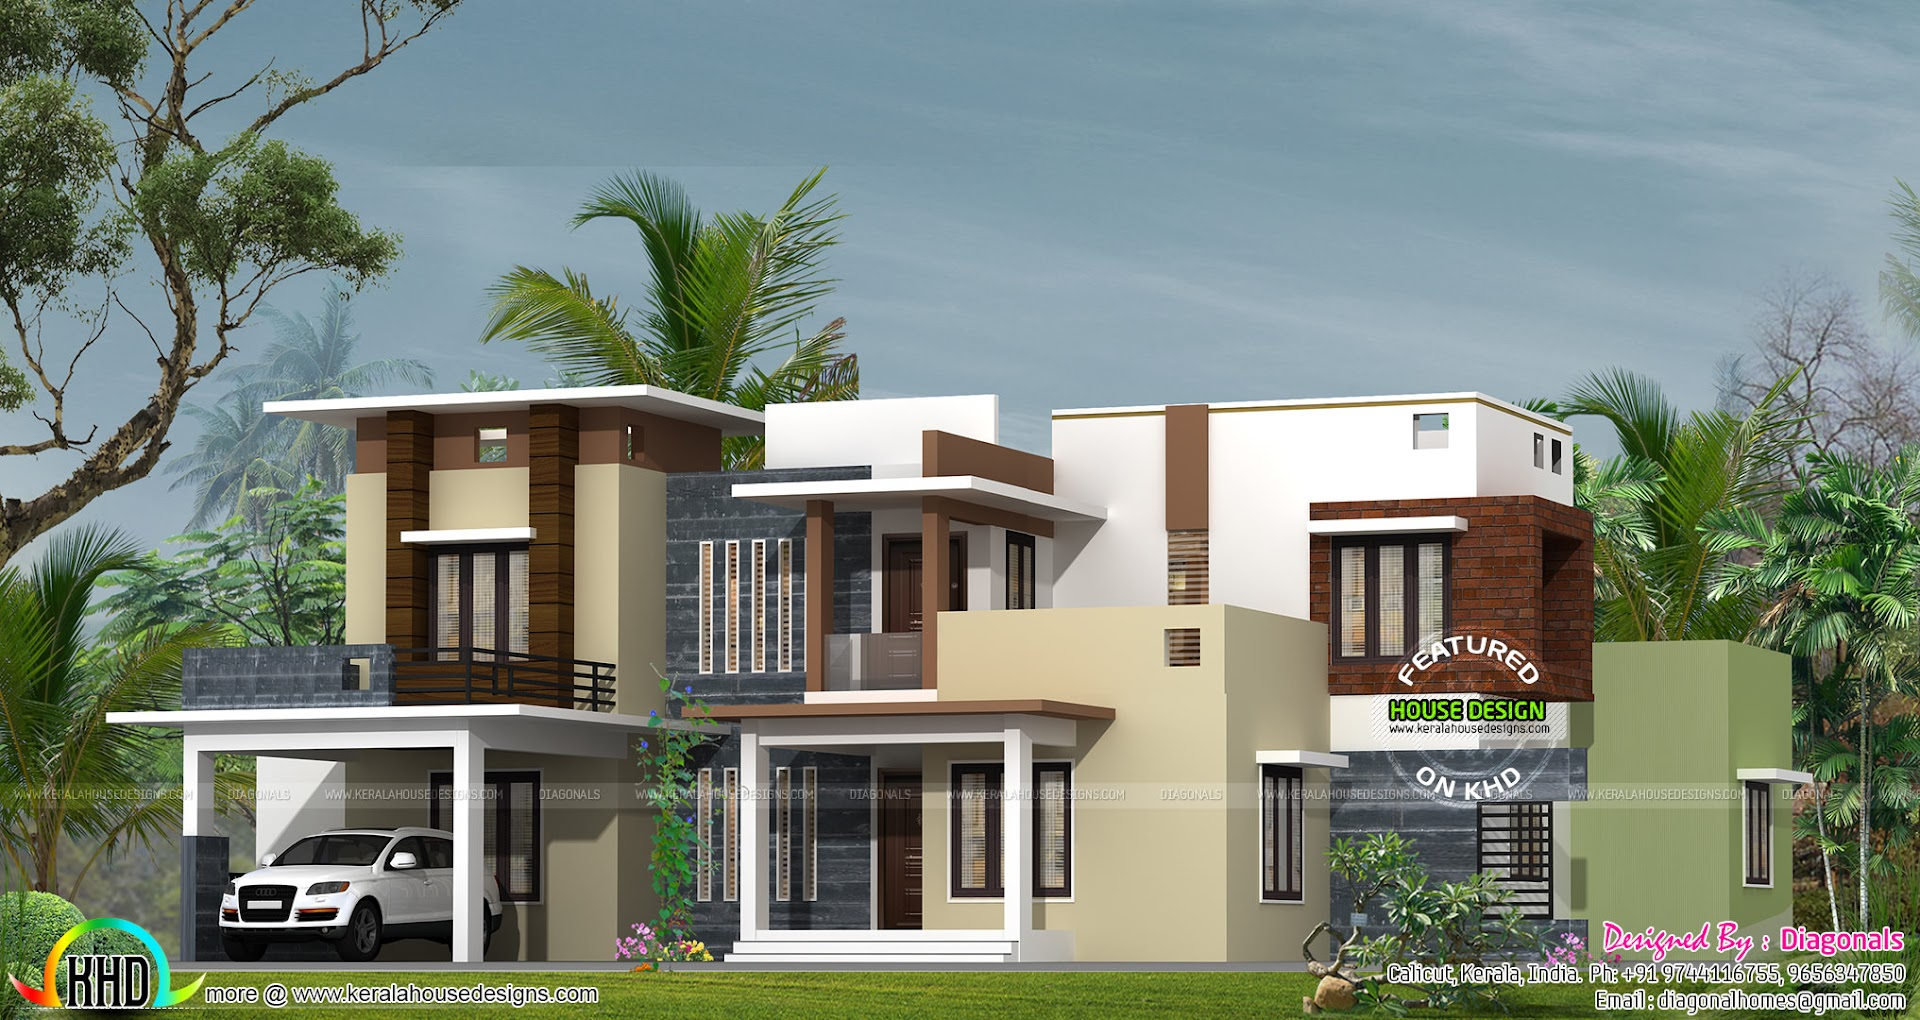 Modern box type Kerala home design - Kerala home design ...